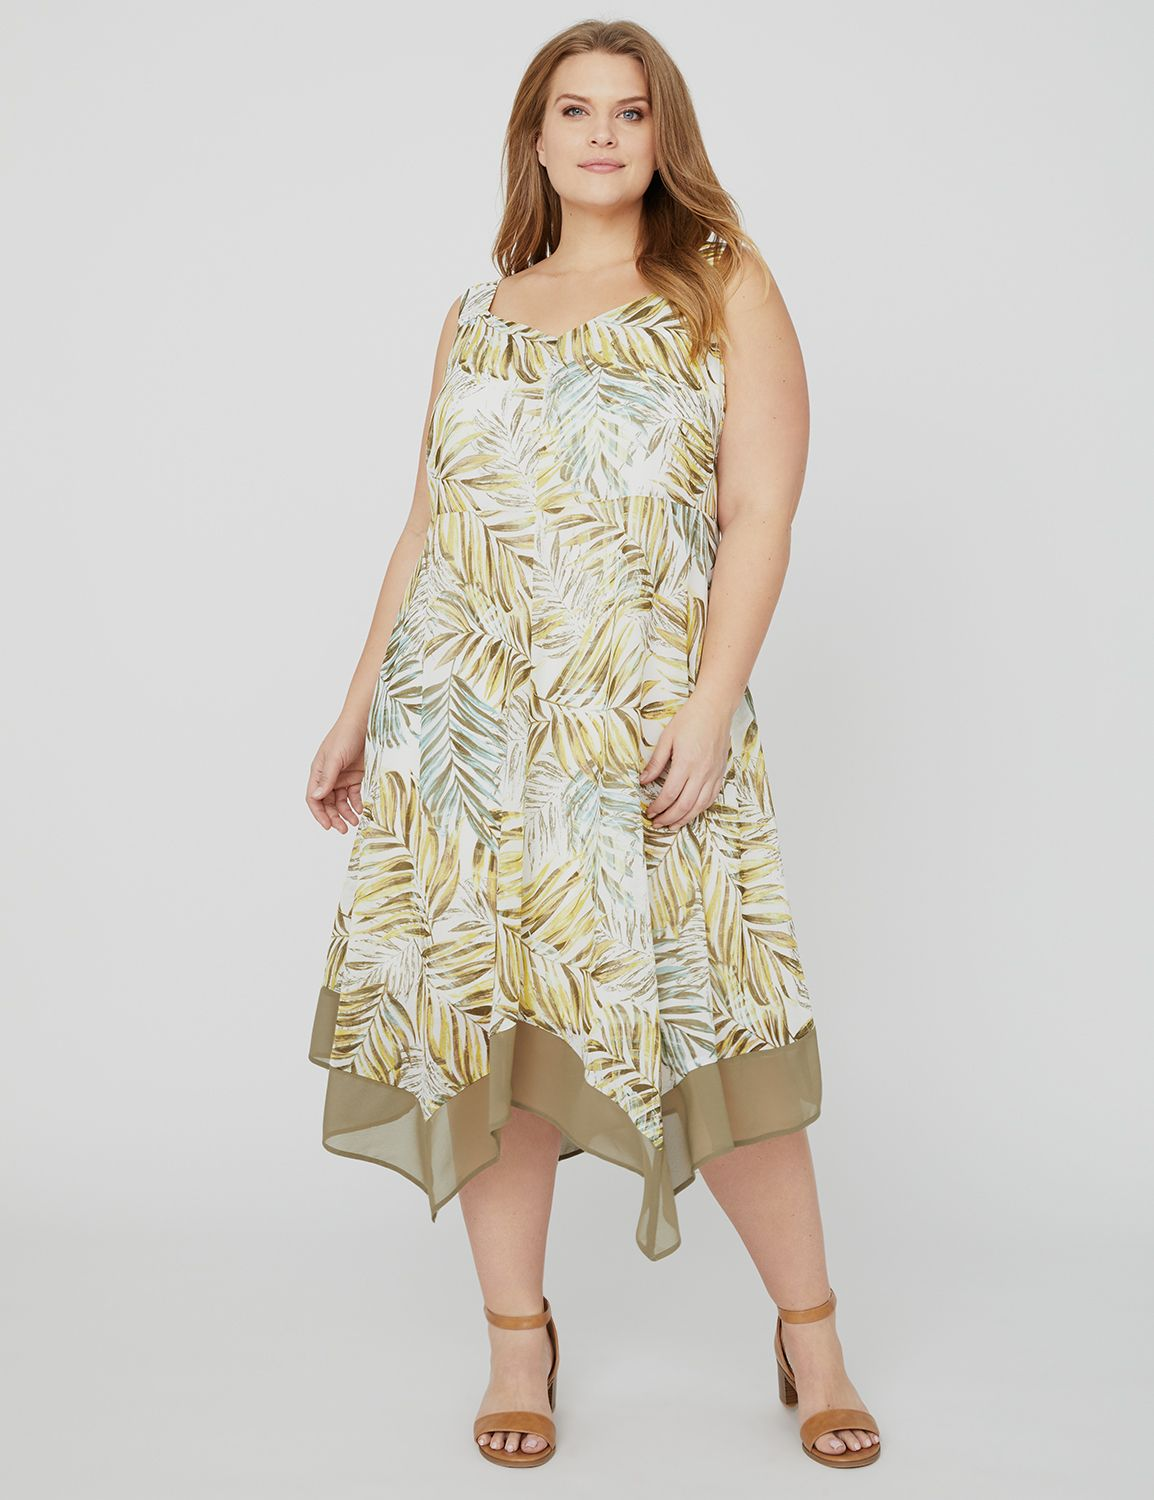 Greenwood Imprint Dress with Hankerchief Hem 1089938 Printed HANKY HEM DRESS wit MP-300102453